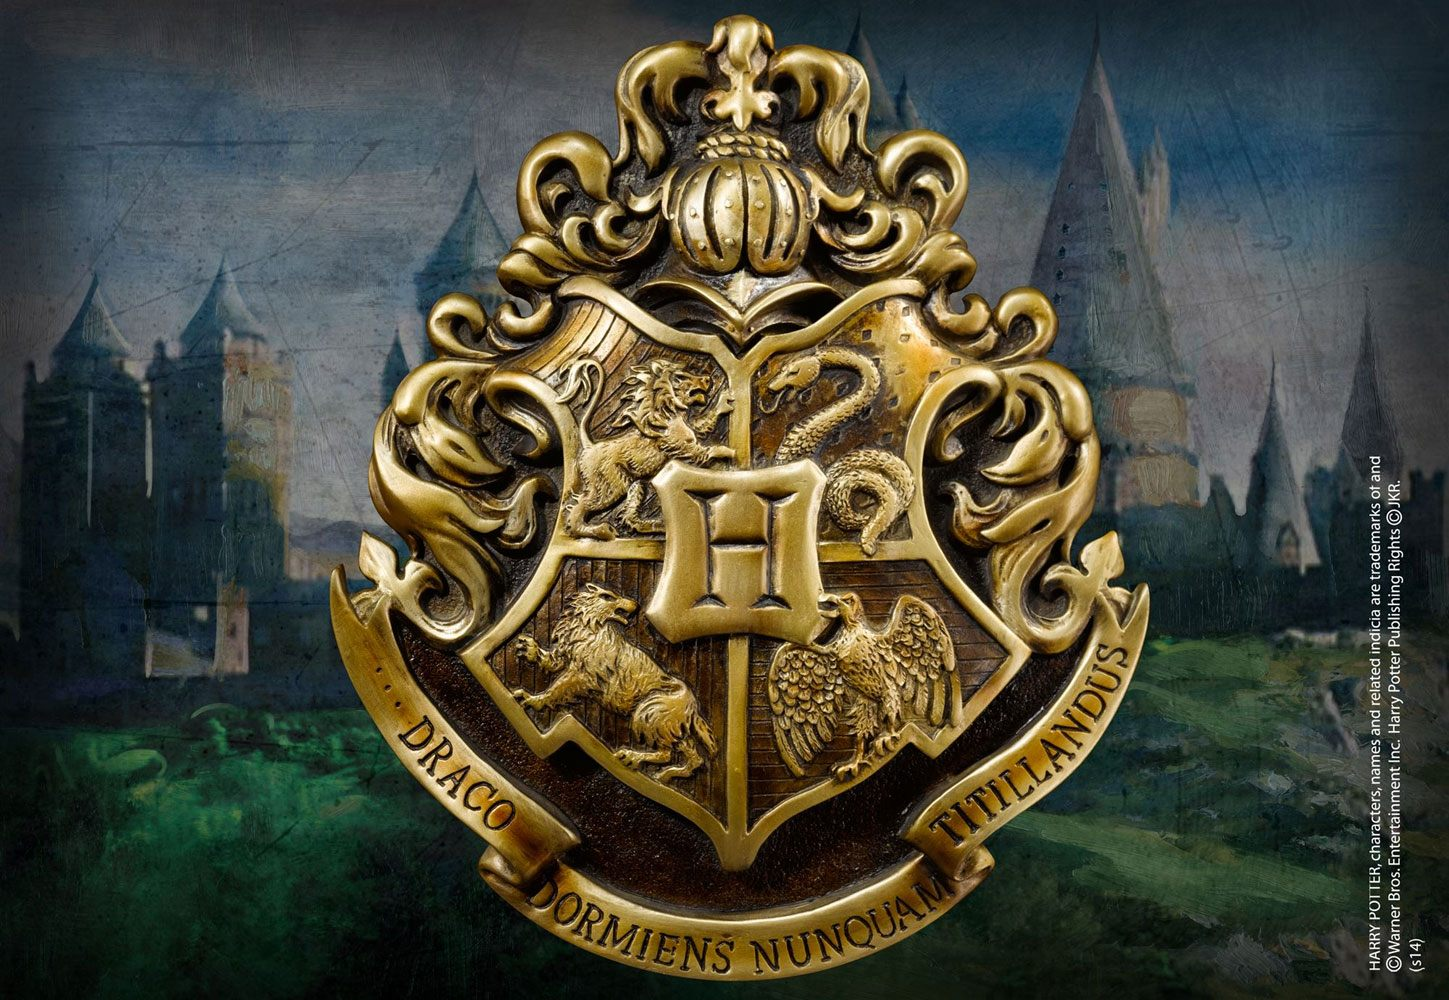 Harry Potter Wall Art Hogwarts School Crest 28 x 31 cm